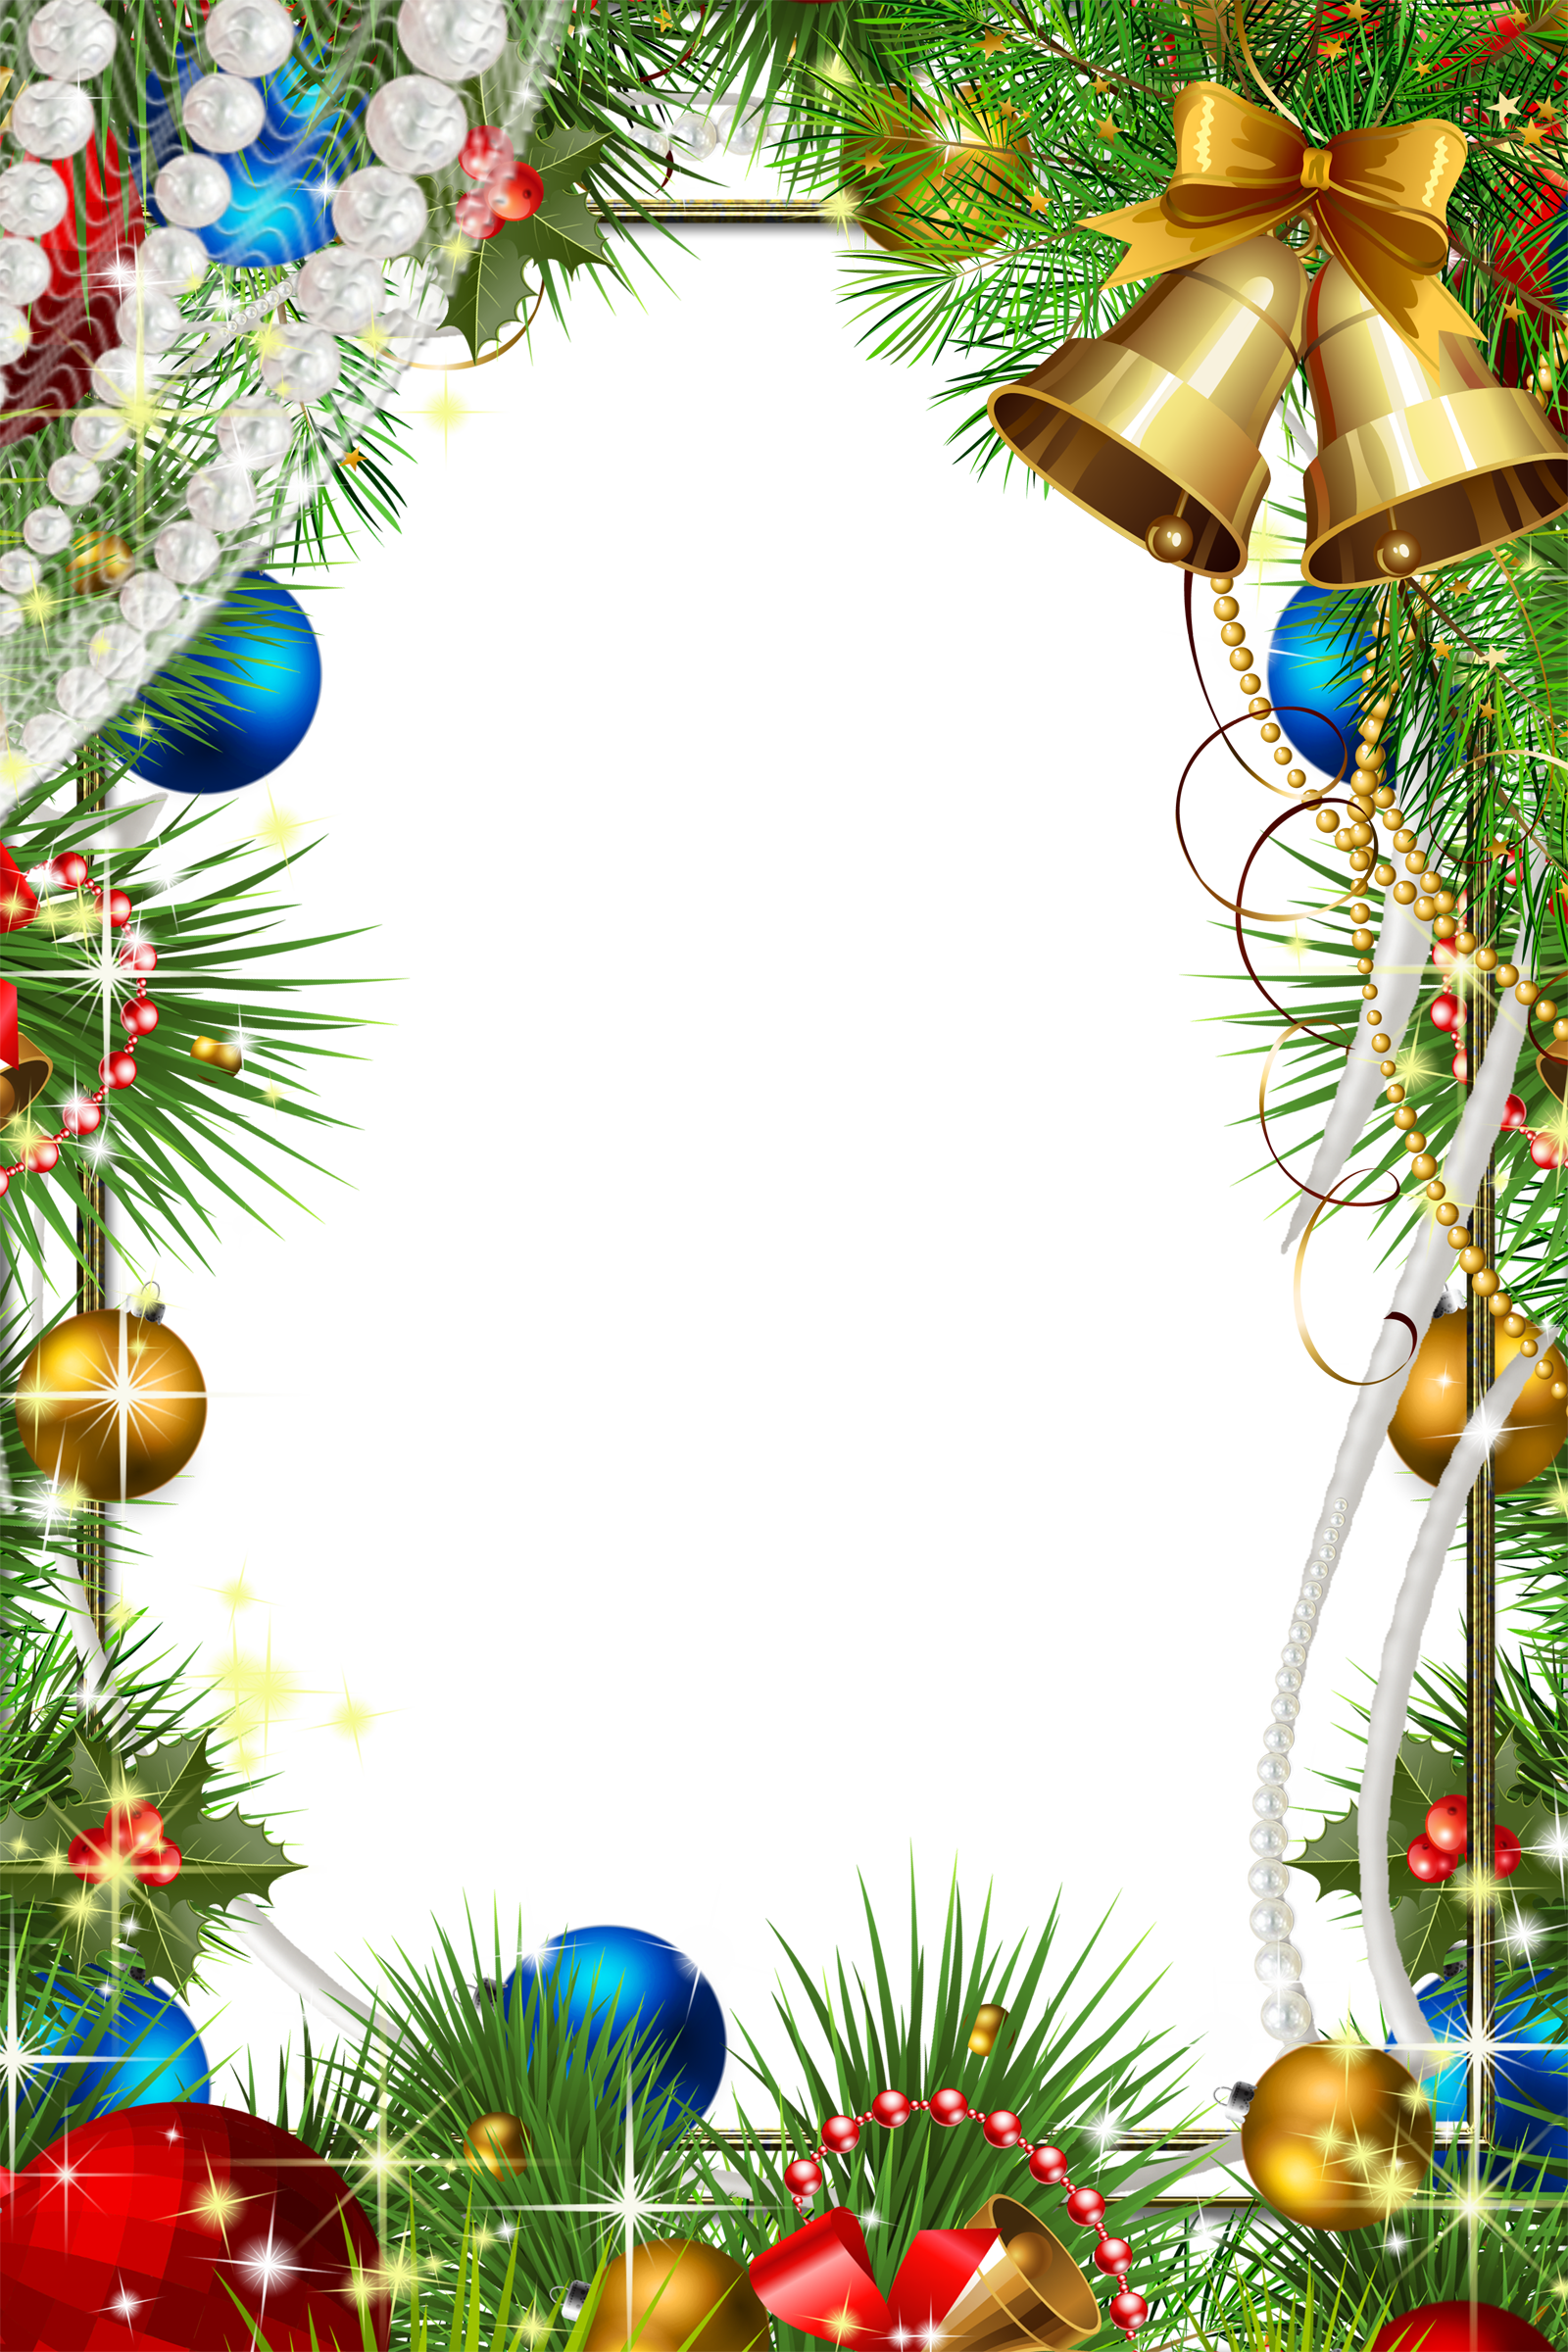 Free CHRISTMAS Frames png images with Transparent Background